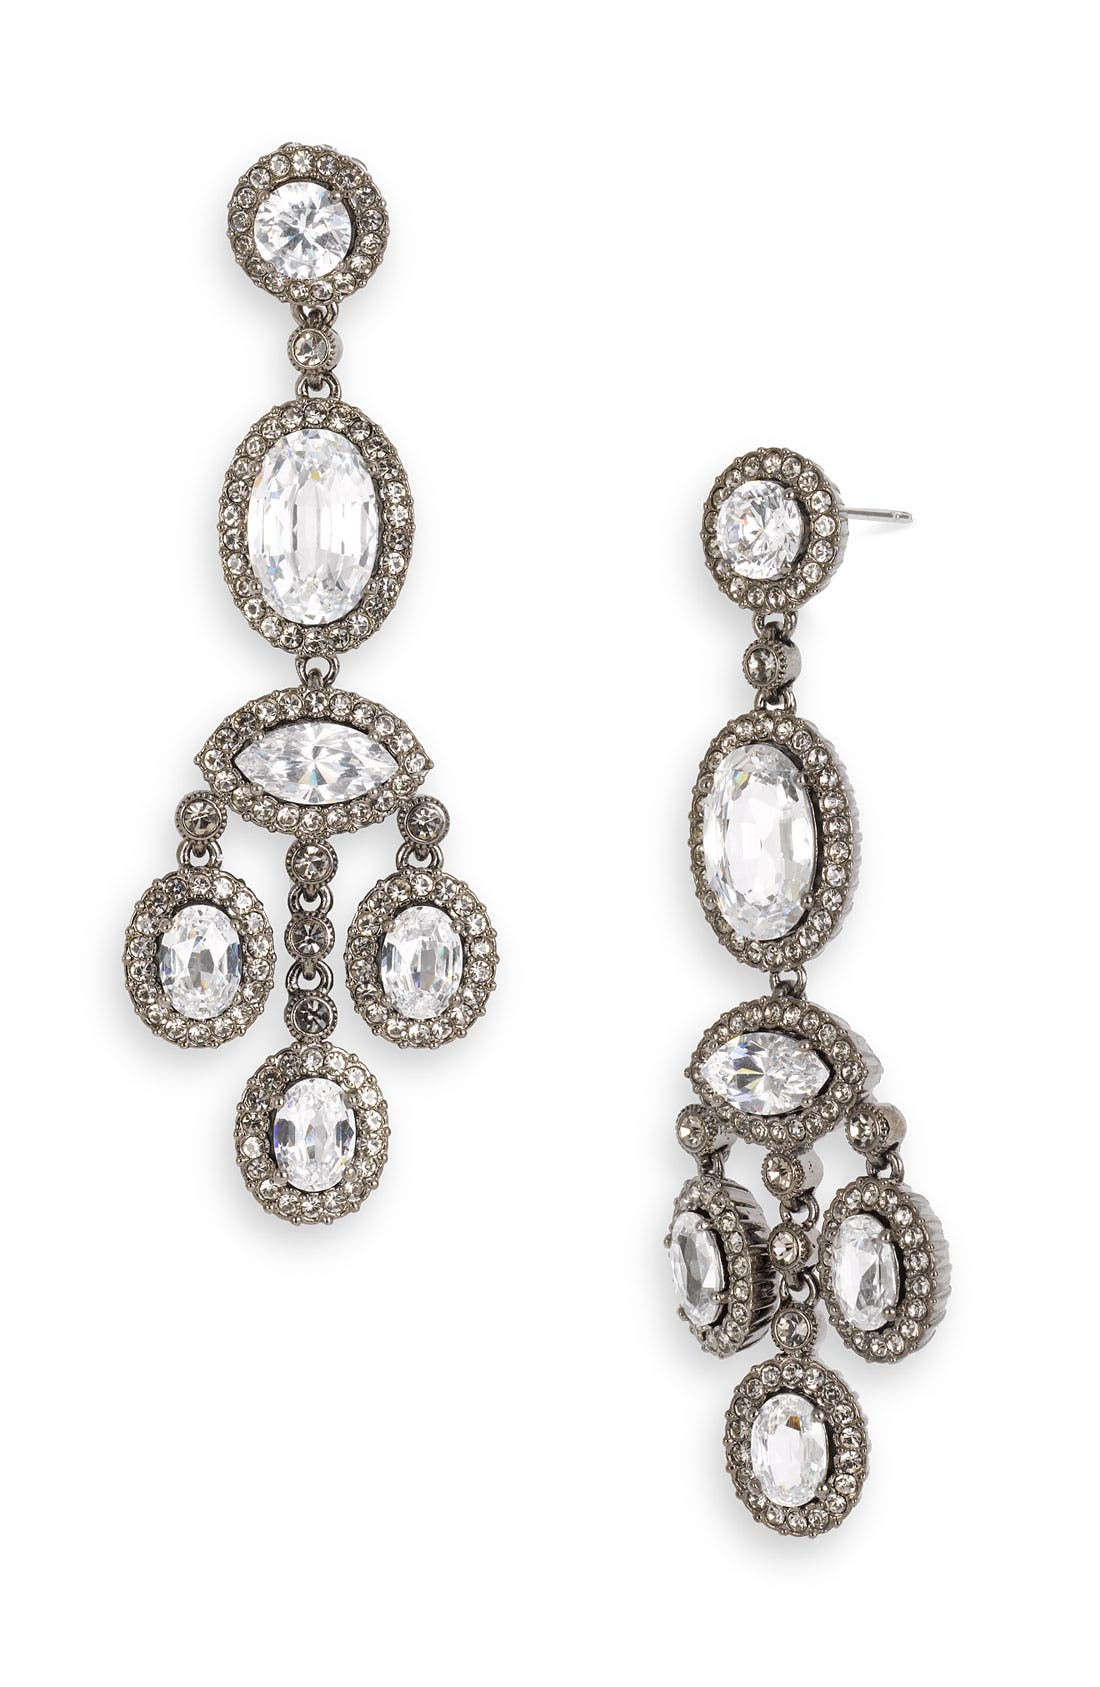 Alternate Image 1 Selected - Nadri Framed Cubic Zirconia Chandelier Earrings